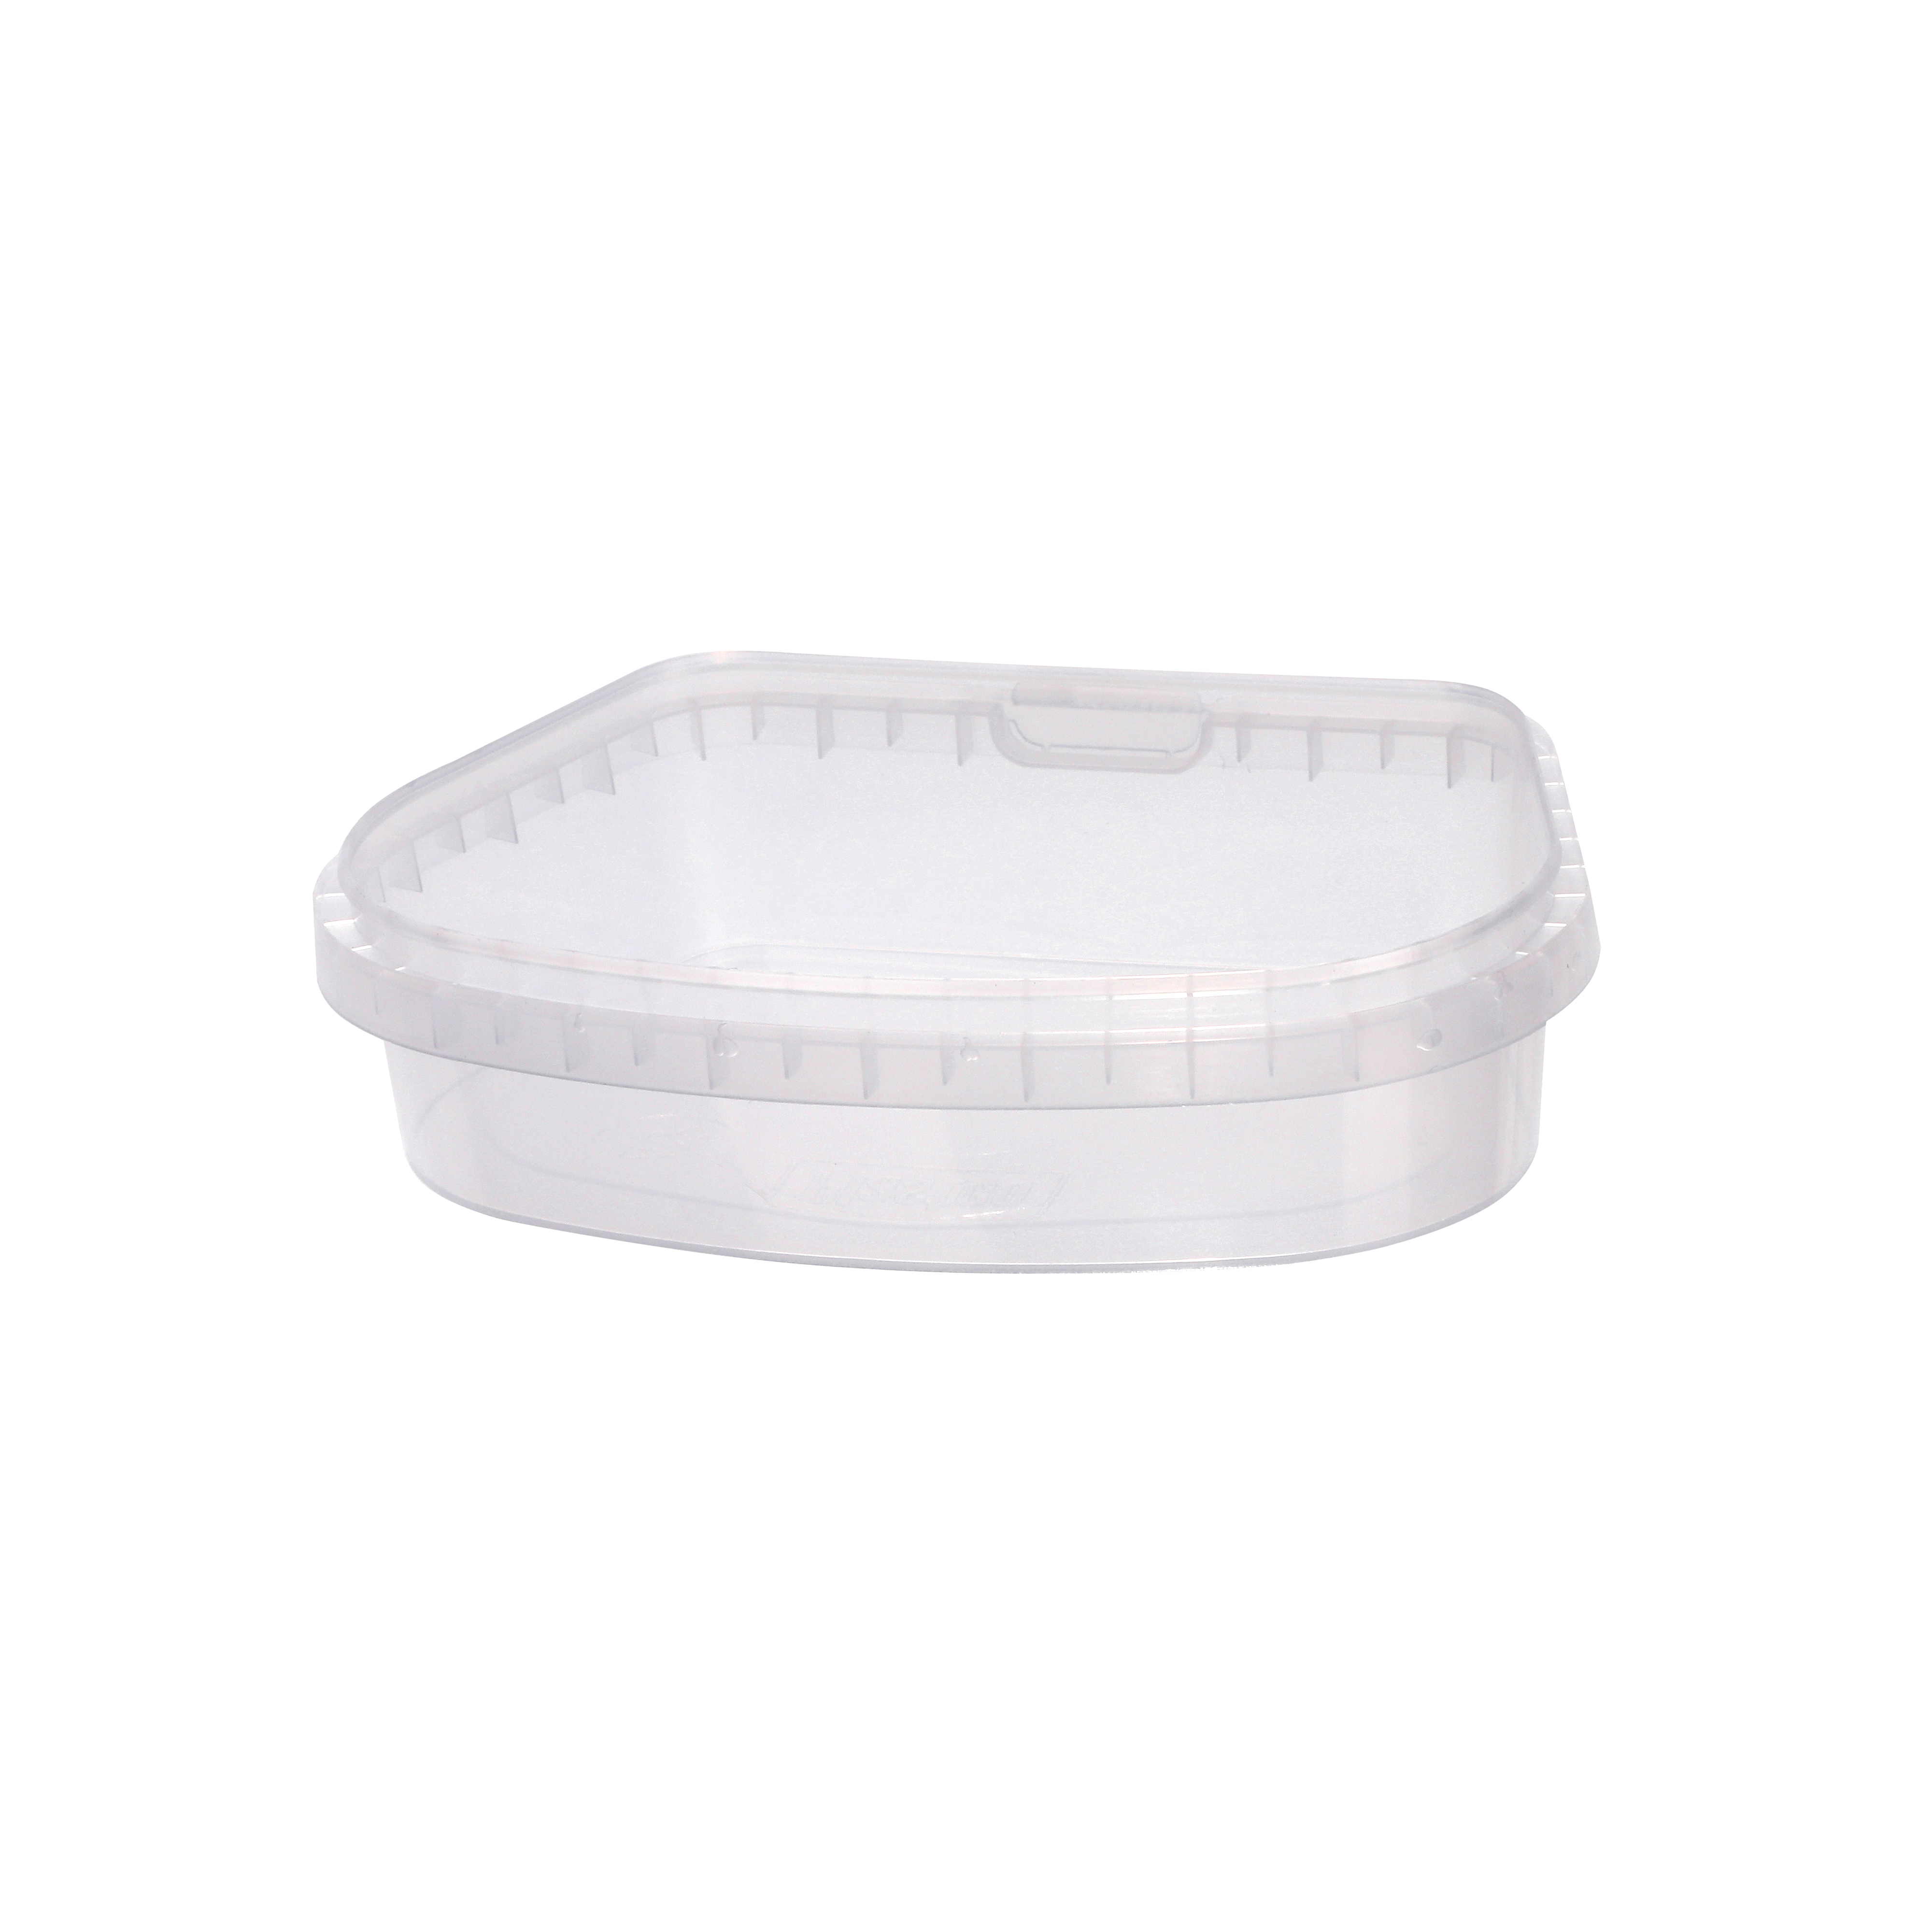 Tamper evident food container by Plastco is perfectly suitable for preserves, caviar, pickled vegetables and various kinds of salads.